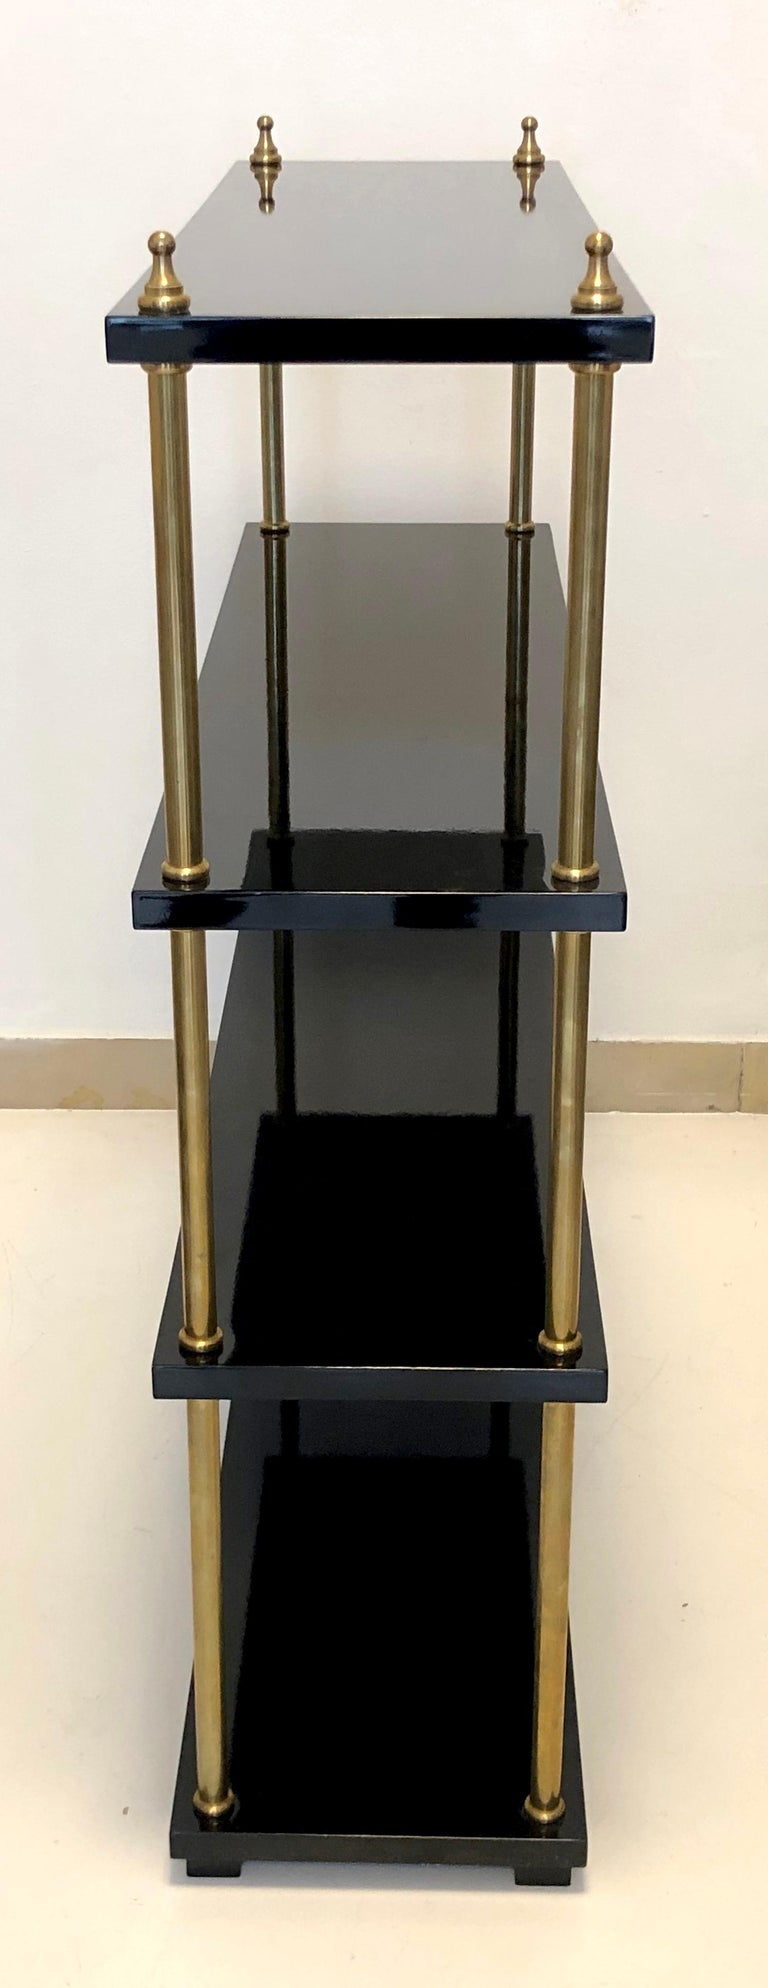 Vintage Lacquer Wood Brass Bookcase, France In Excellent Condition For Sale In Munich, DE